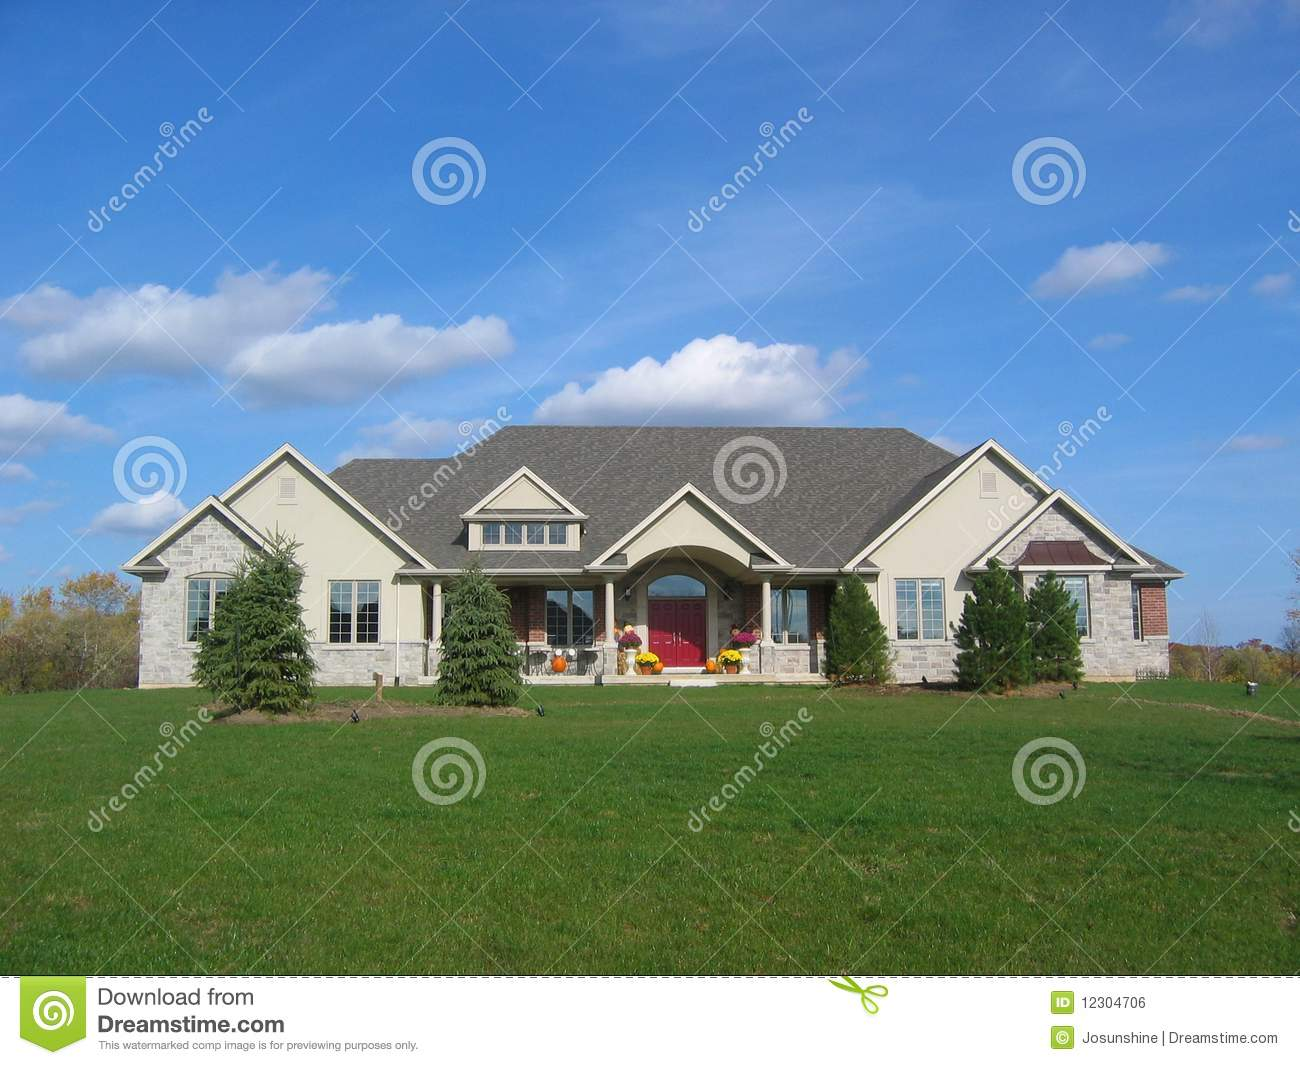 Stucco country house green grass royalty free stock image for Country house online